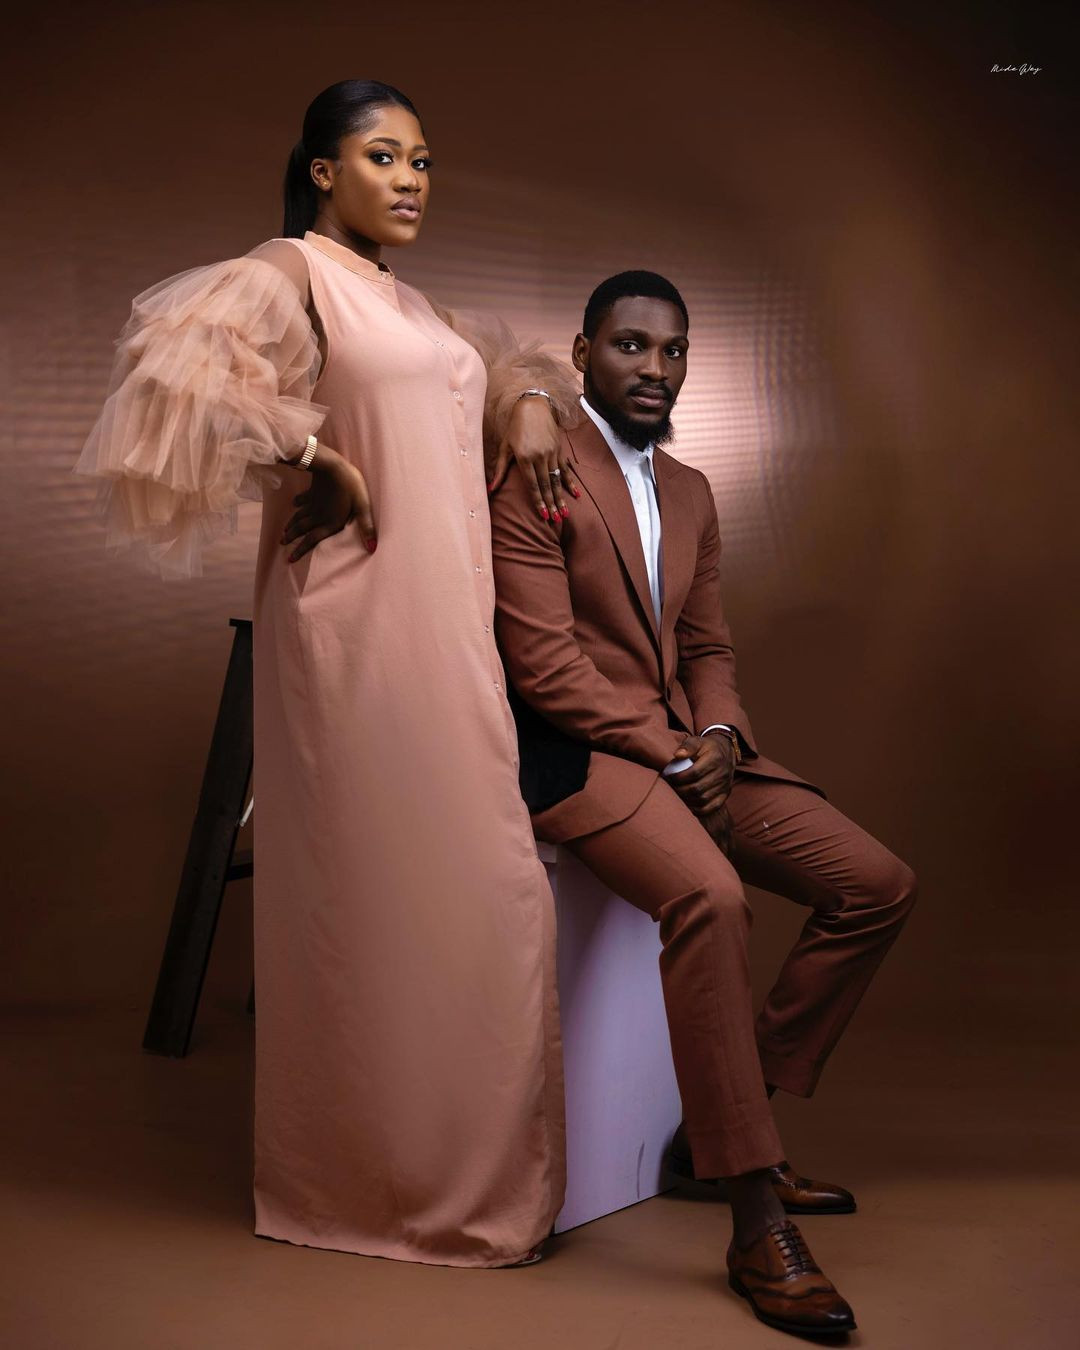 61209c0156c84 - ''I prayed and you came'' Tobi Bakare, gushes over his bride-to-be as he shares more pre-wedding photos